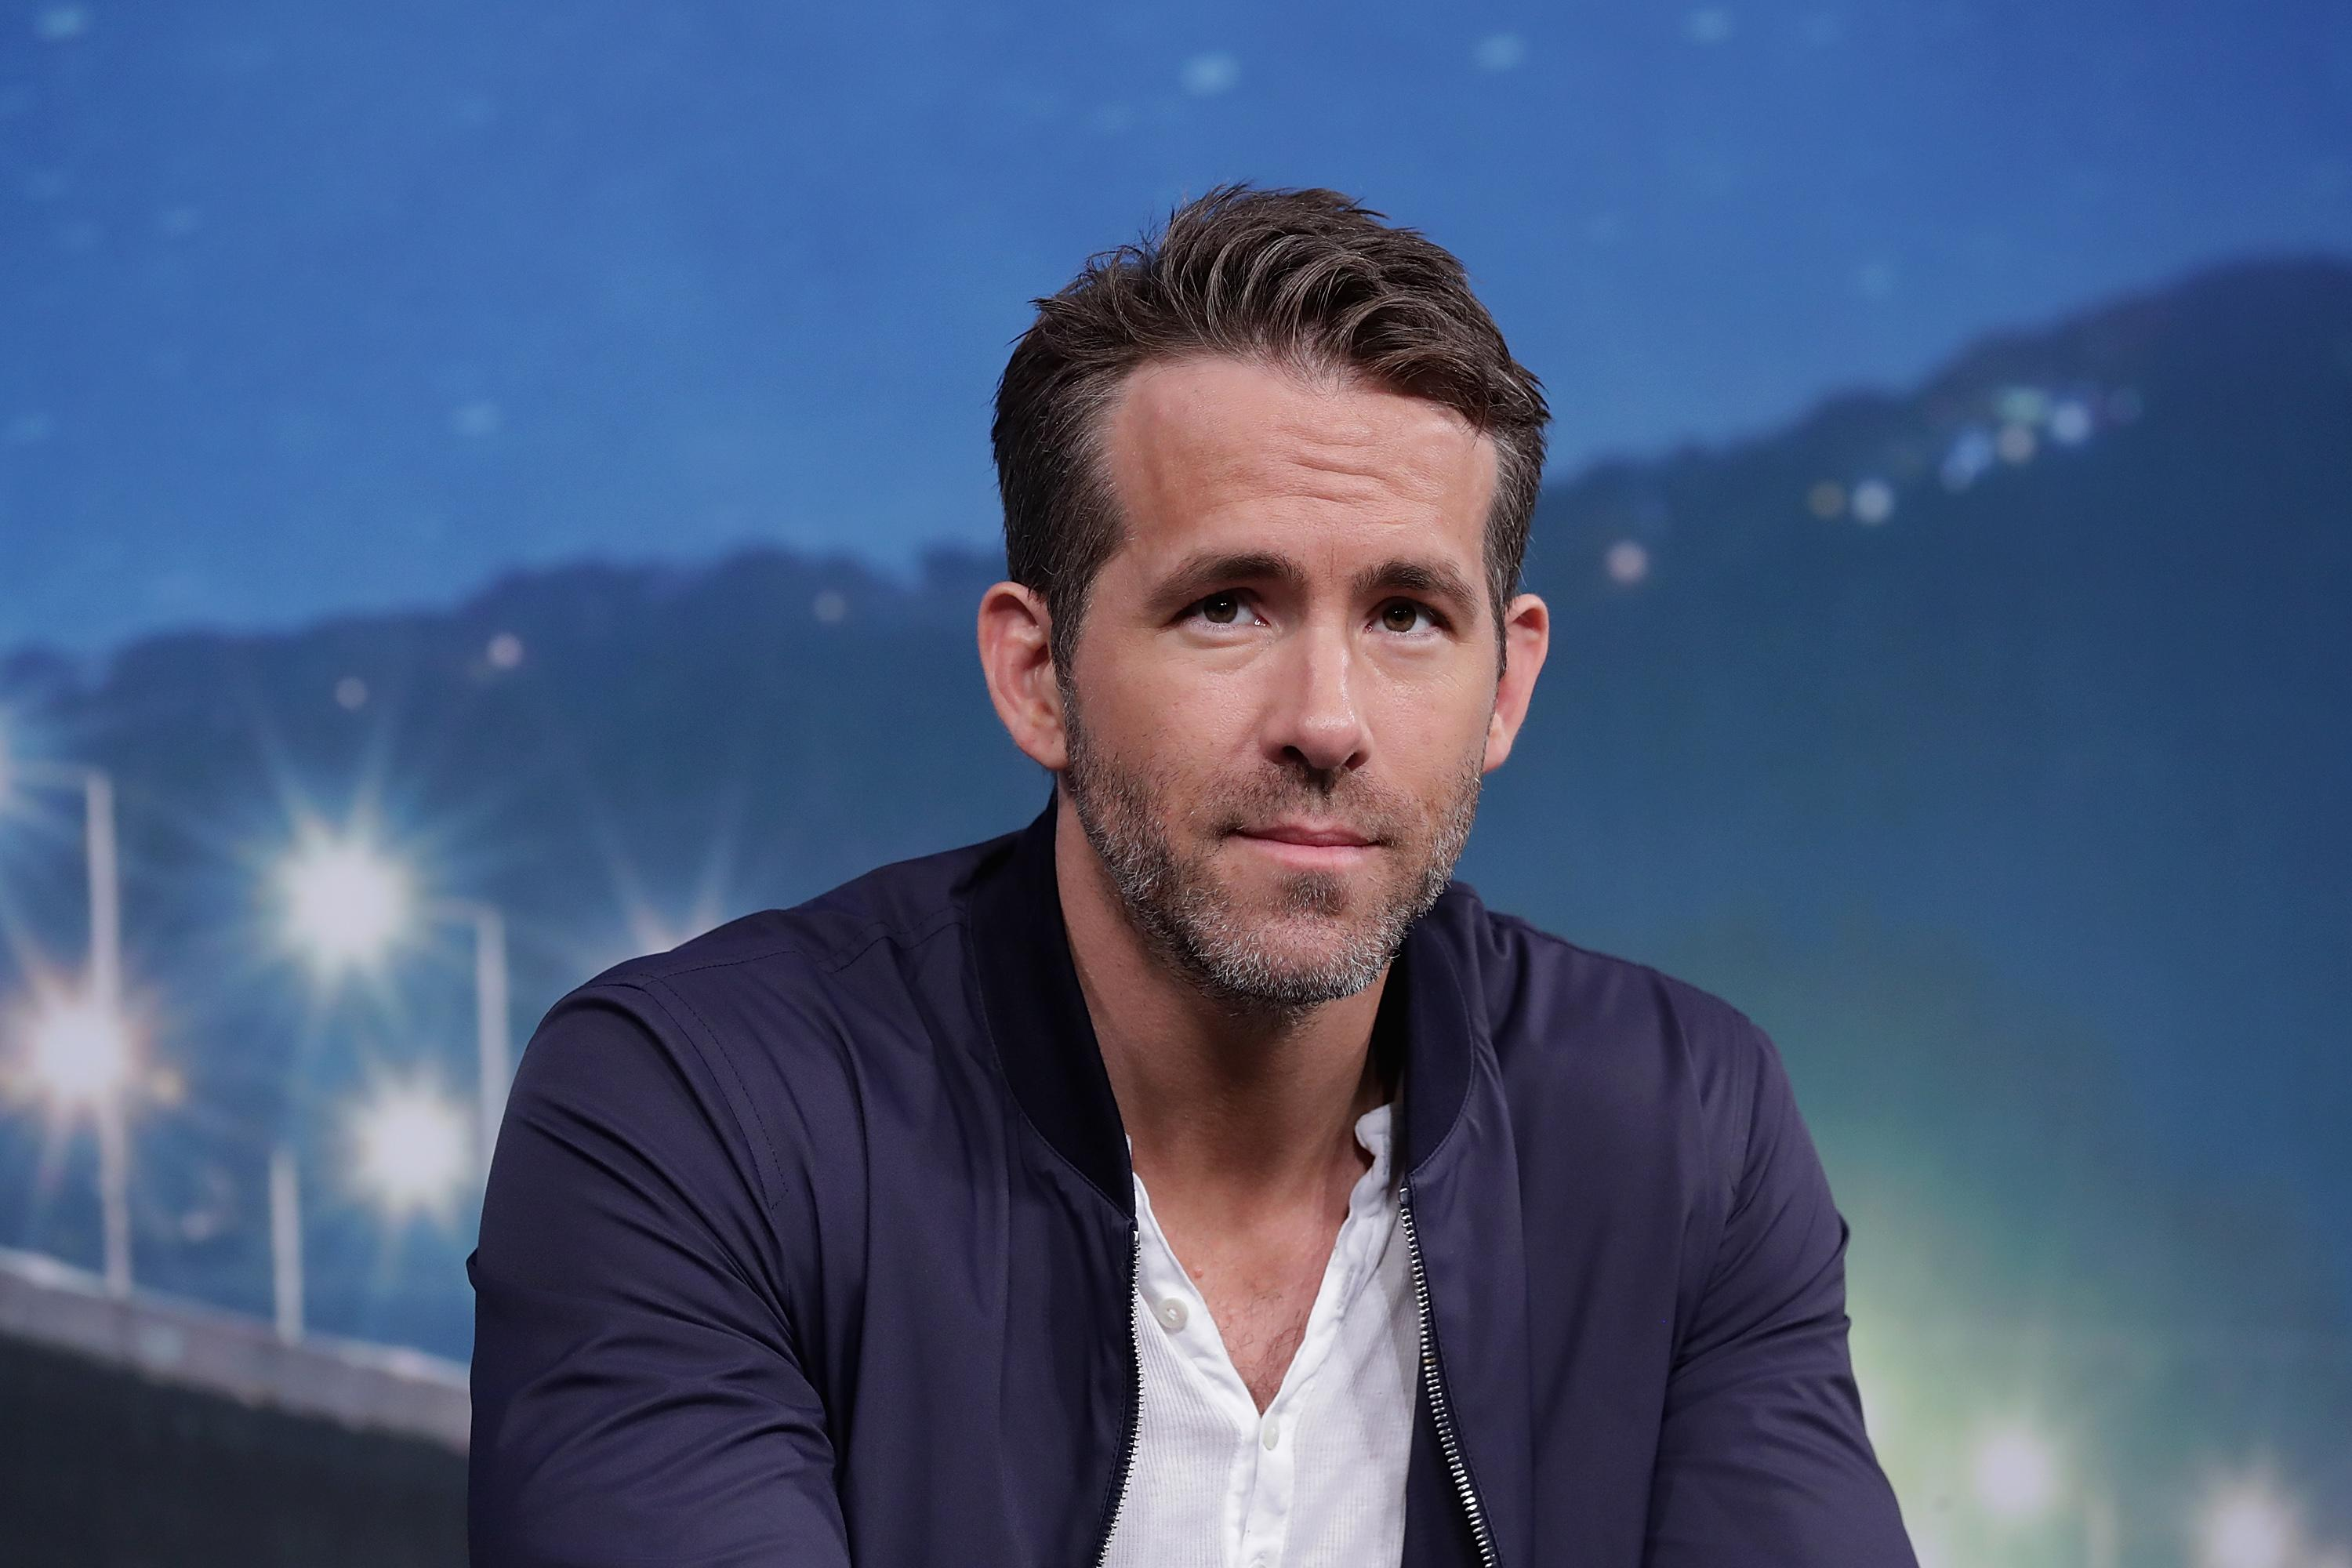 Ryan Reynolds attends the press conference for a premiere of Deadpool 2 on May 2, 2018, in Seoul, South Korea